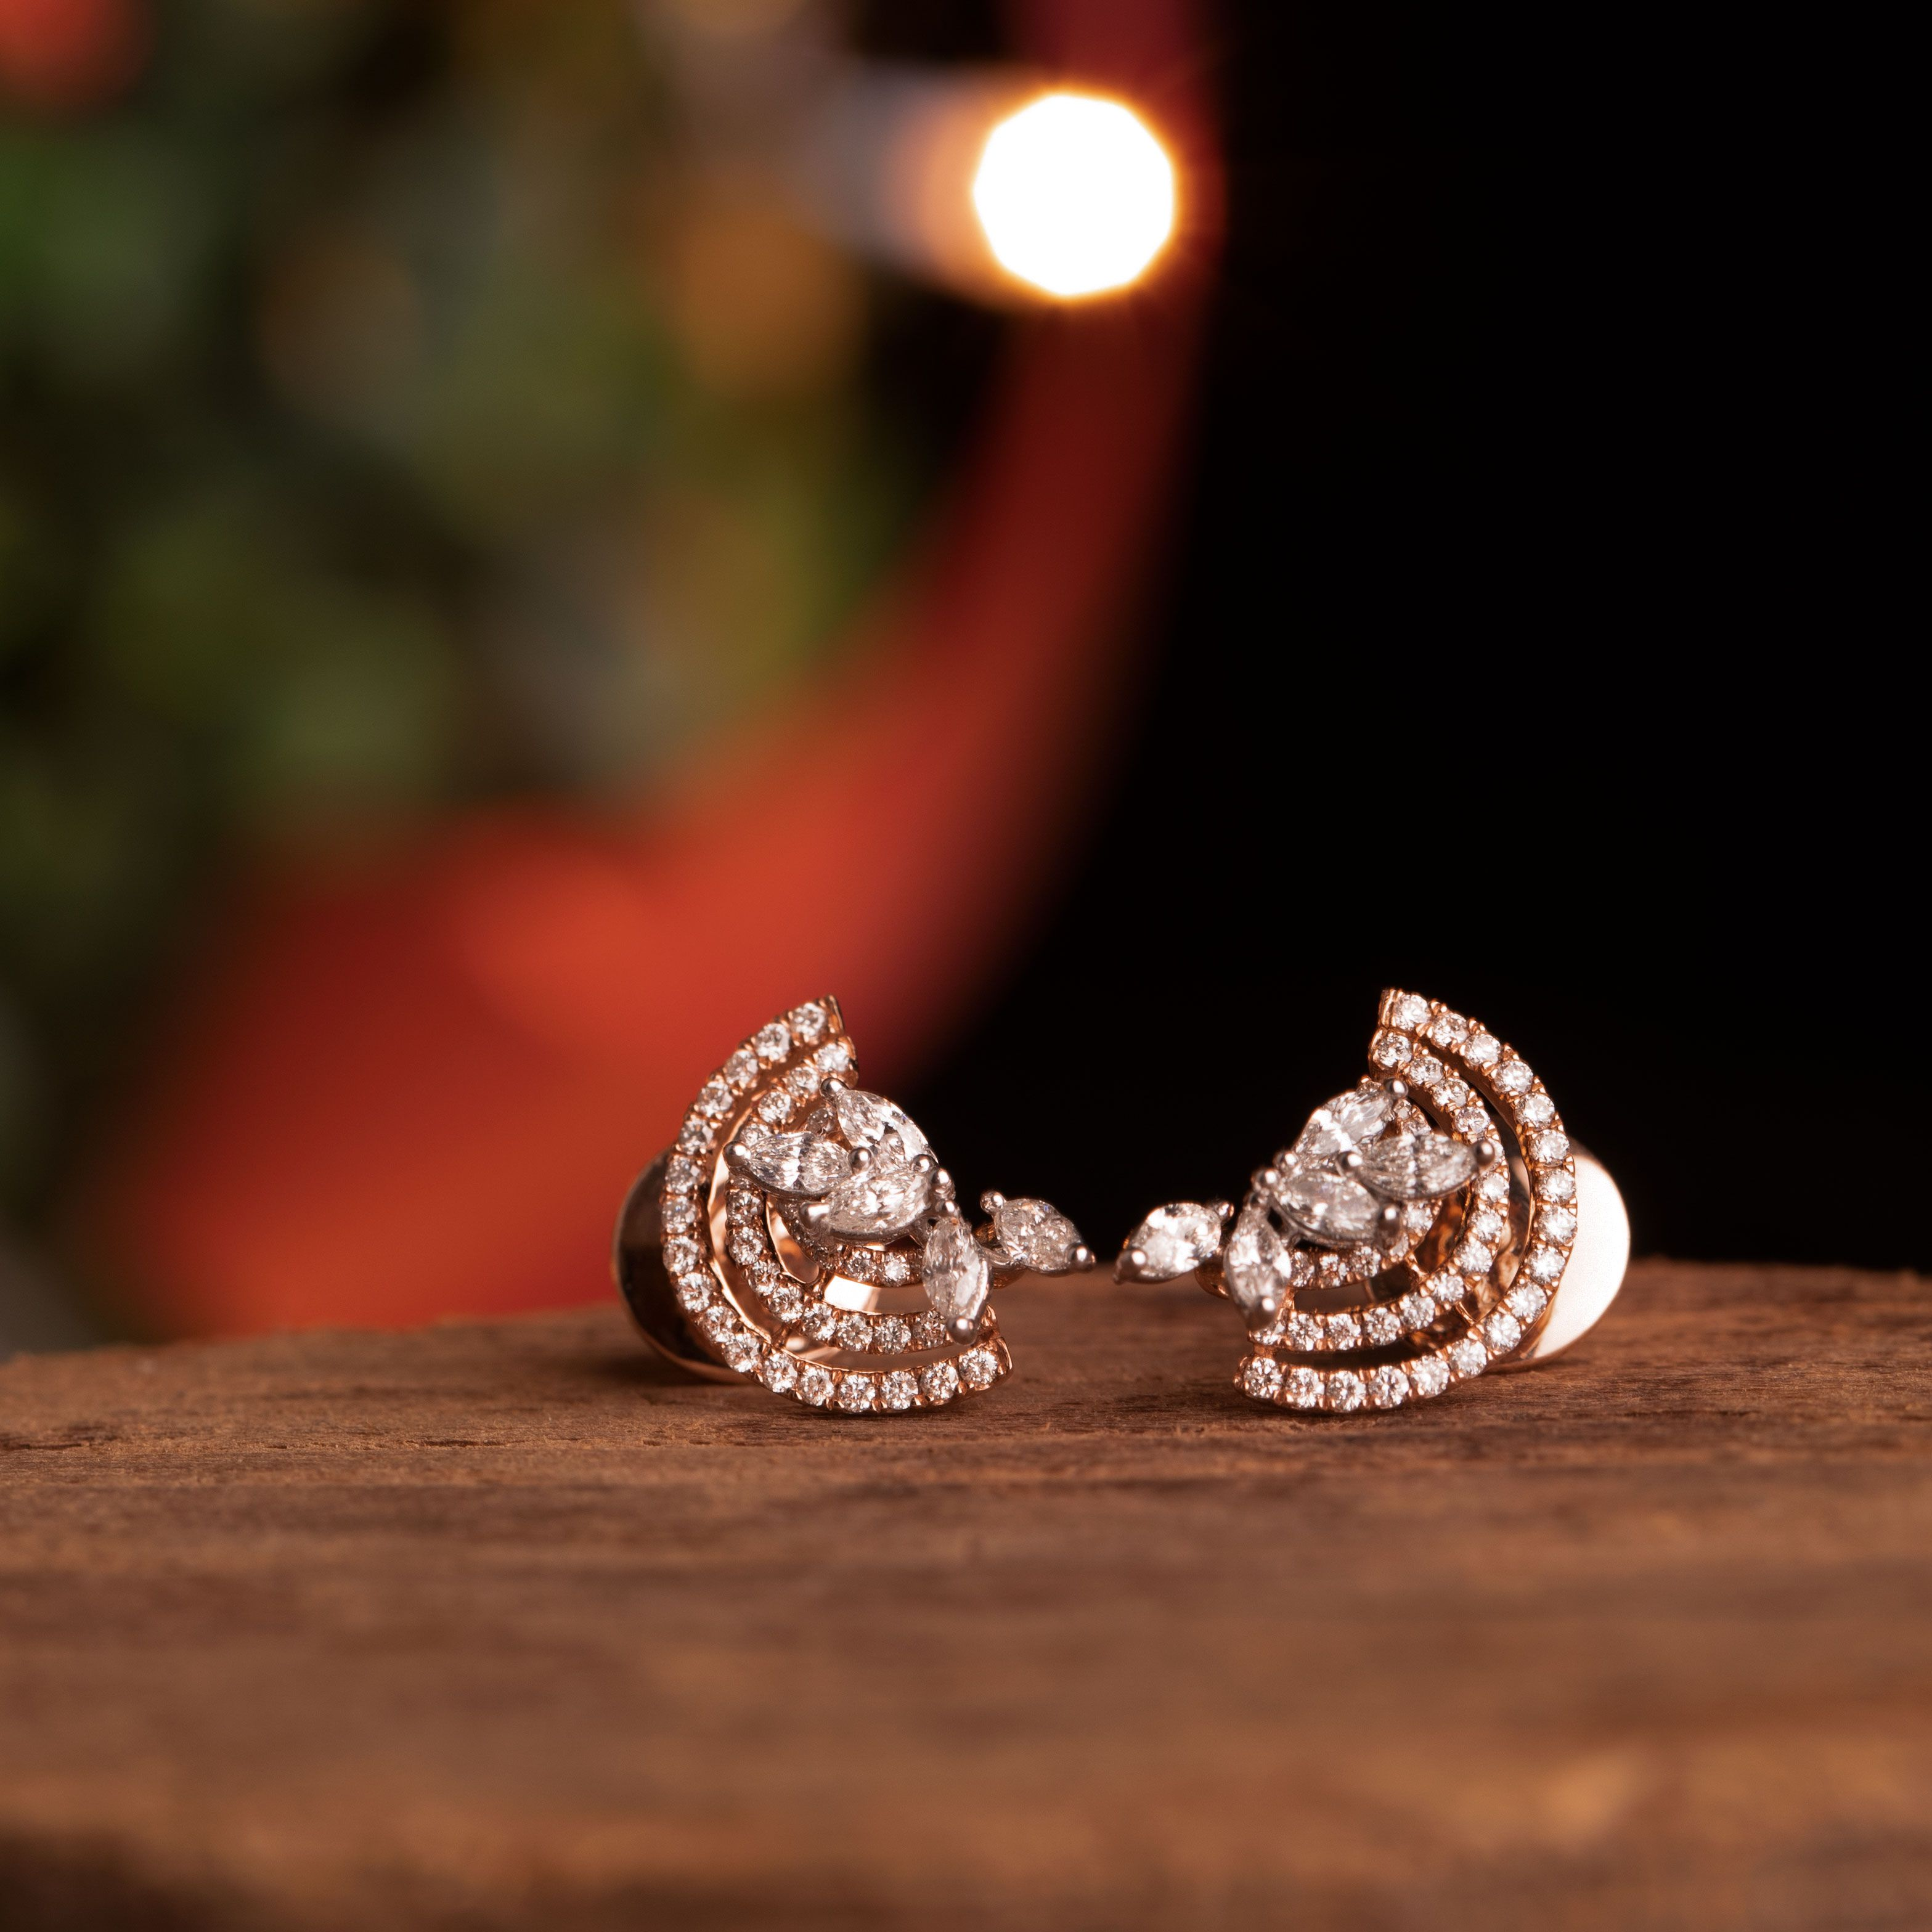 e830d865e Celebrate this Christmas the Sparkling way ✨ Check out these amazing  diamond earrings at the Diamond Mela store today ! SKU#DM019ERGPRE157 ...